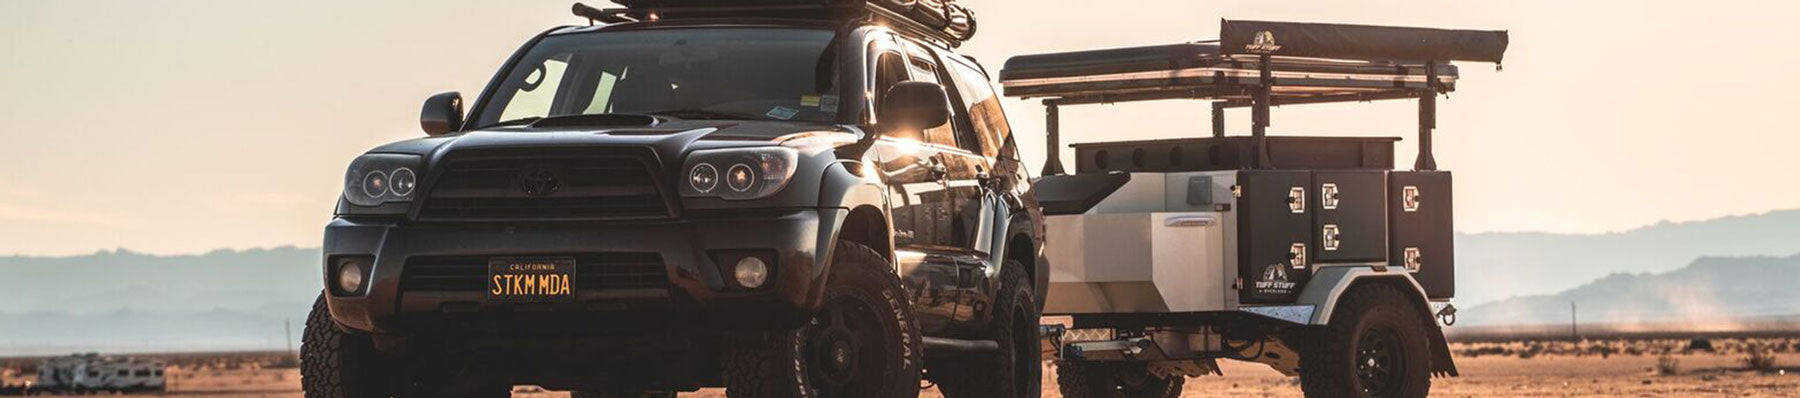 Trailer Accessories | Tuff Stuff 4x4 & Tuff Stuff Overland